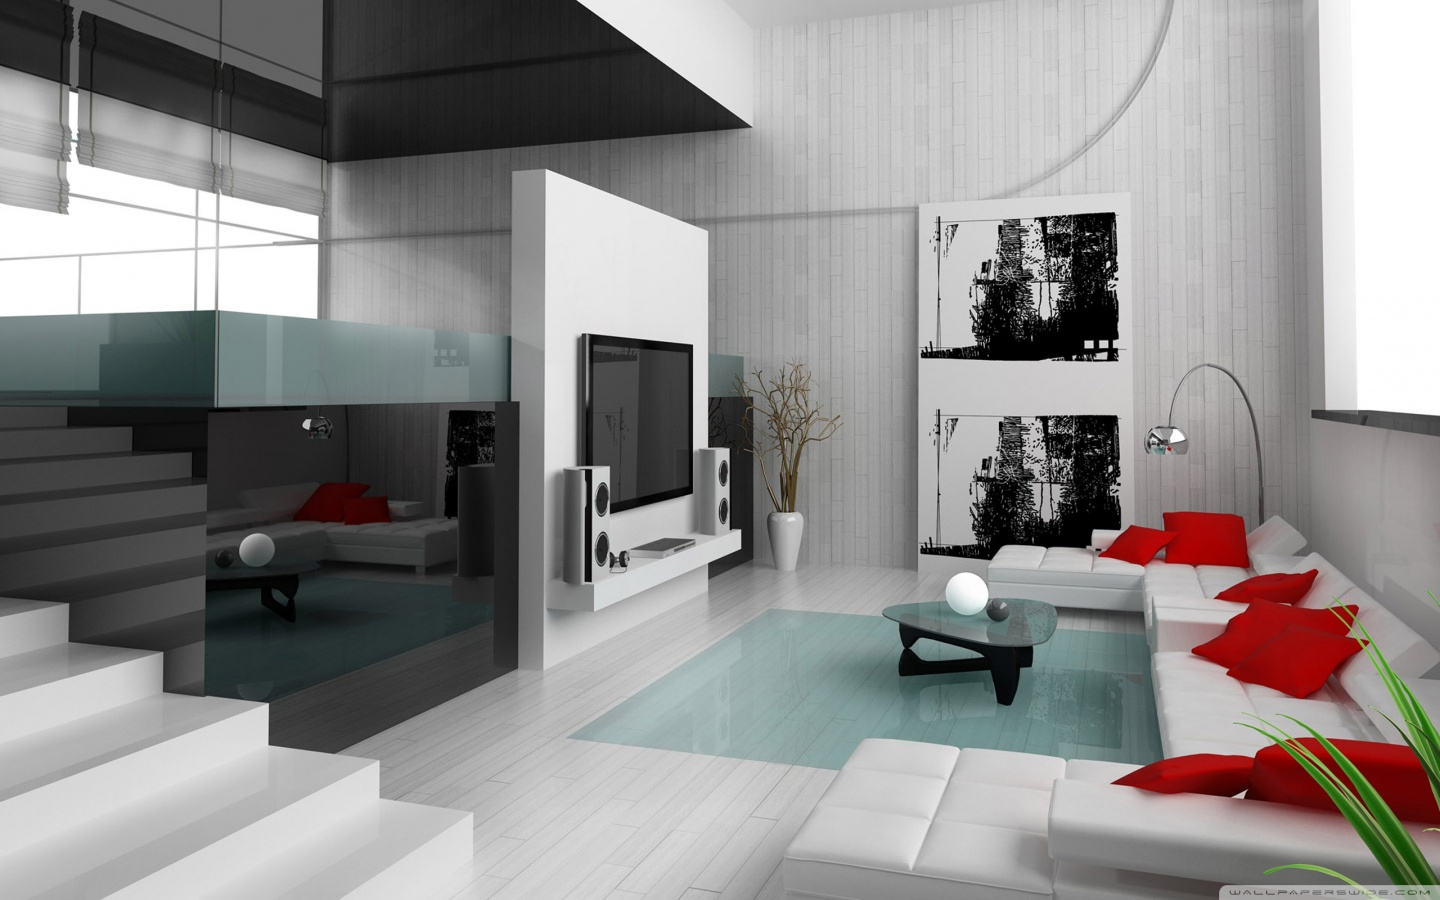 Minimalist interior design imagination art architecture for Modern minimalist interior design style